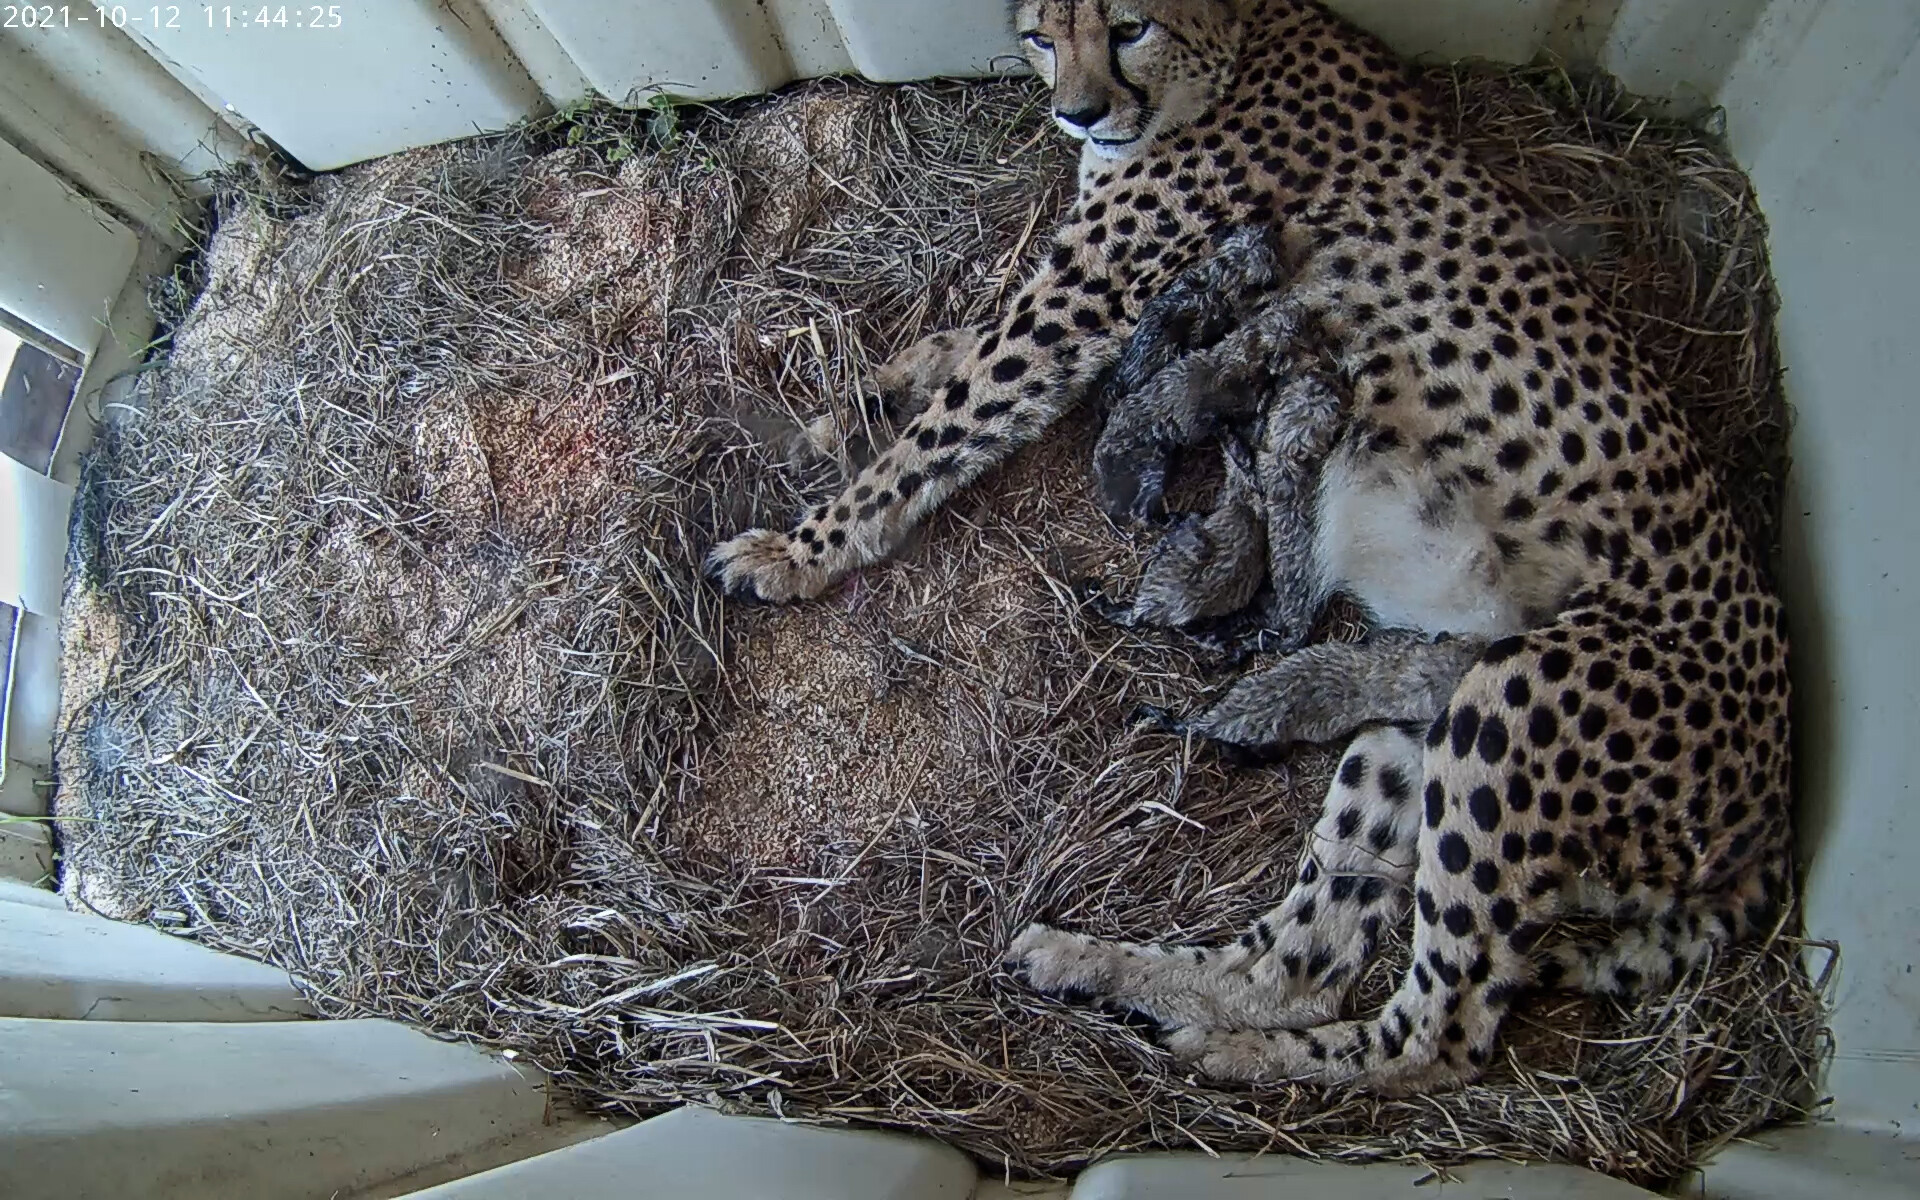 <i>Smithsonian Conservation Biology Institute</i><br/>Animal lovers can see the new cubs via a live webcam.